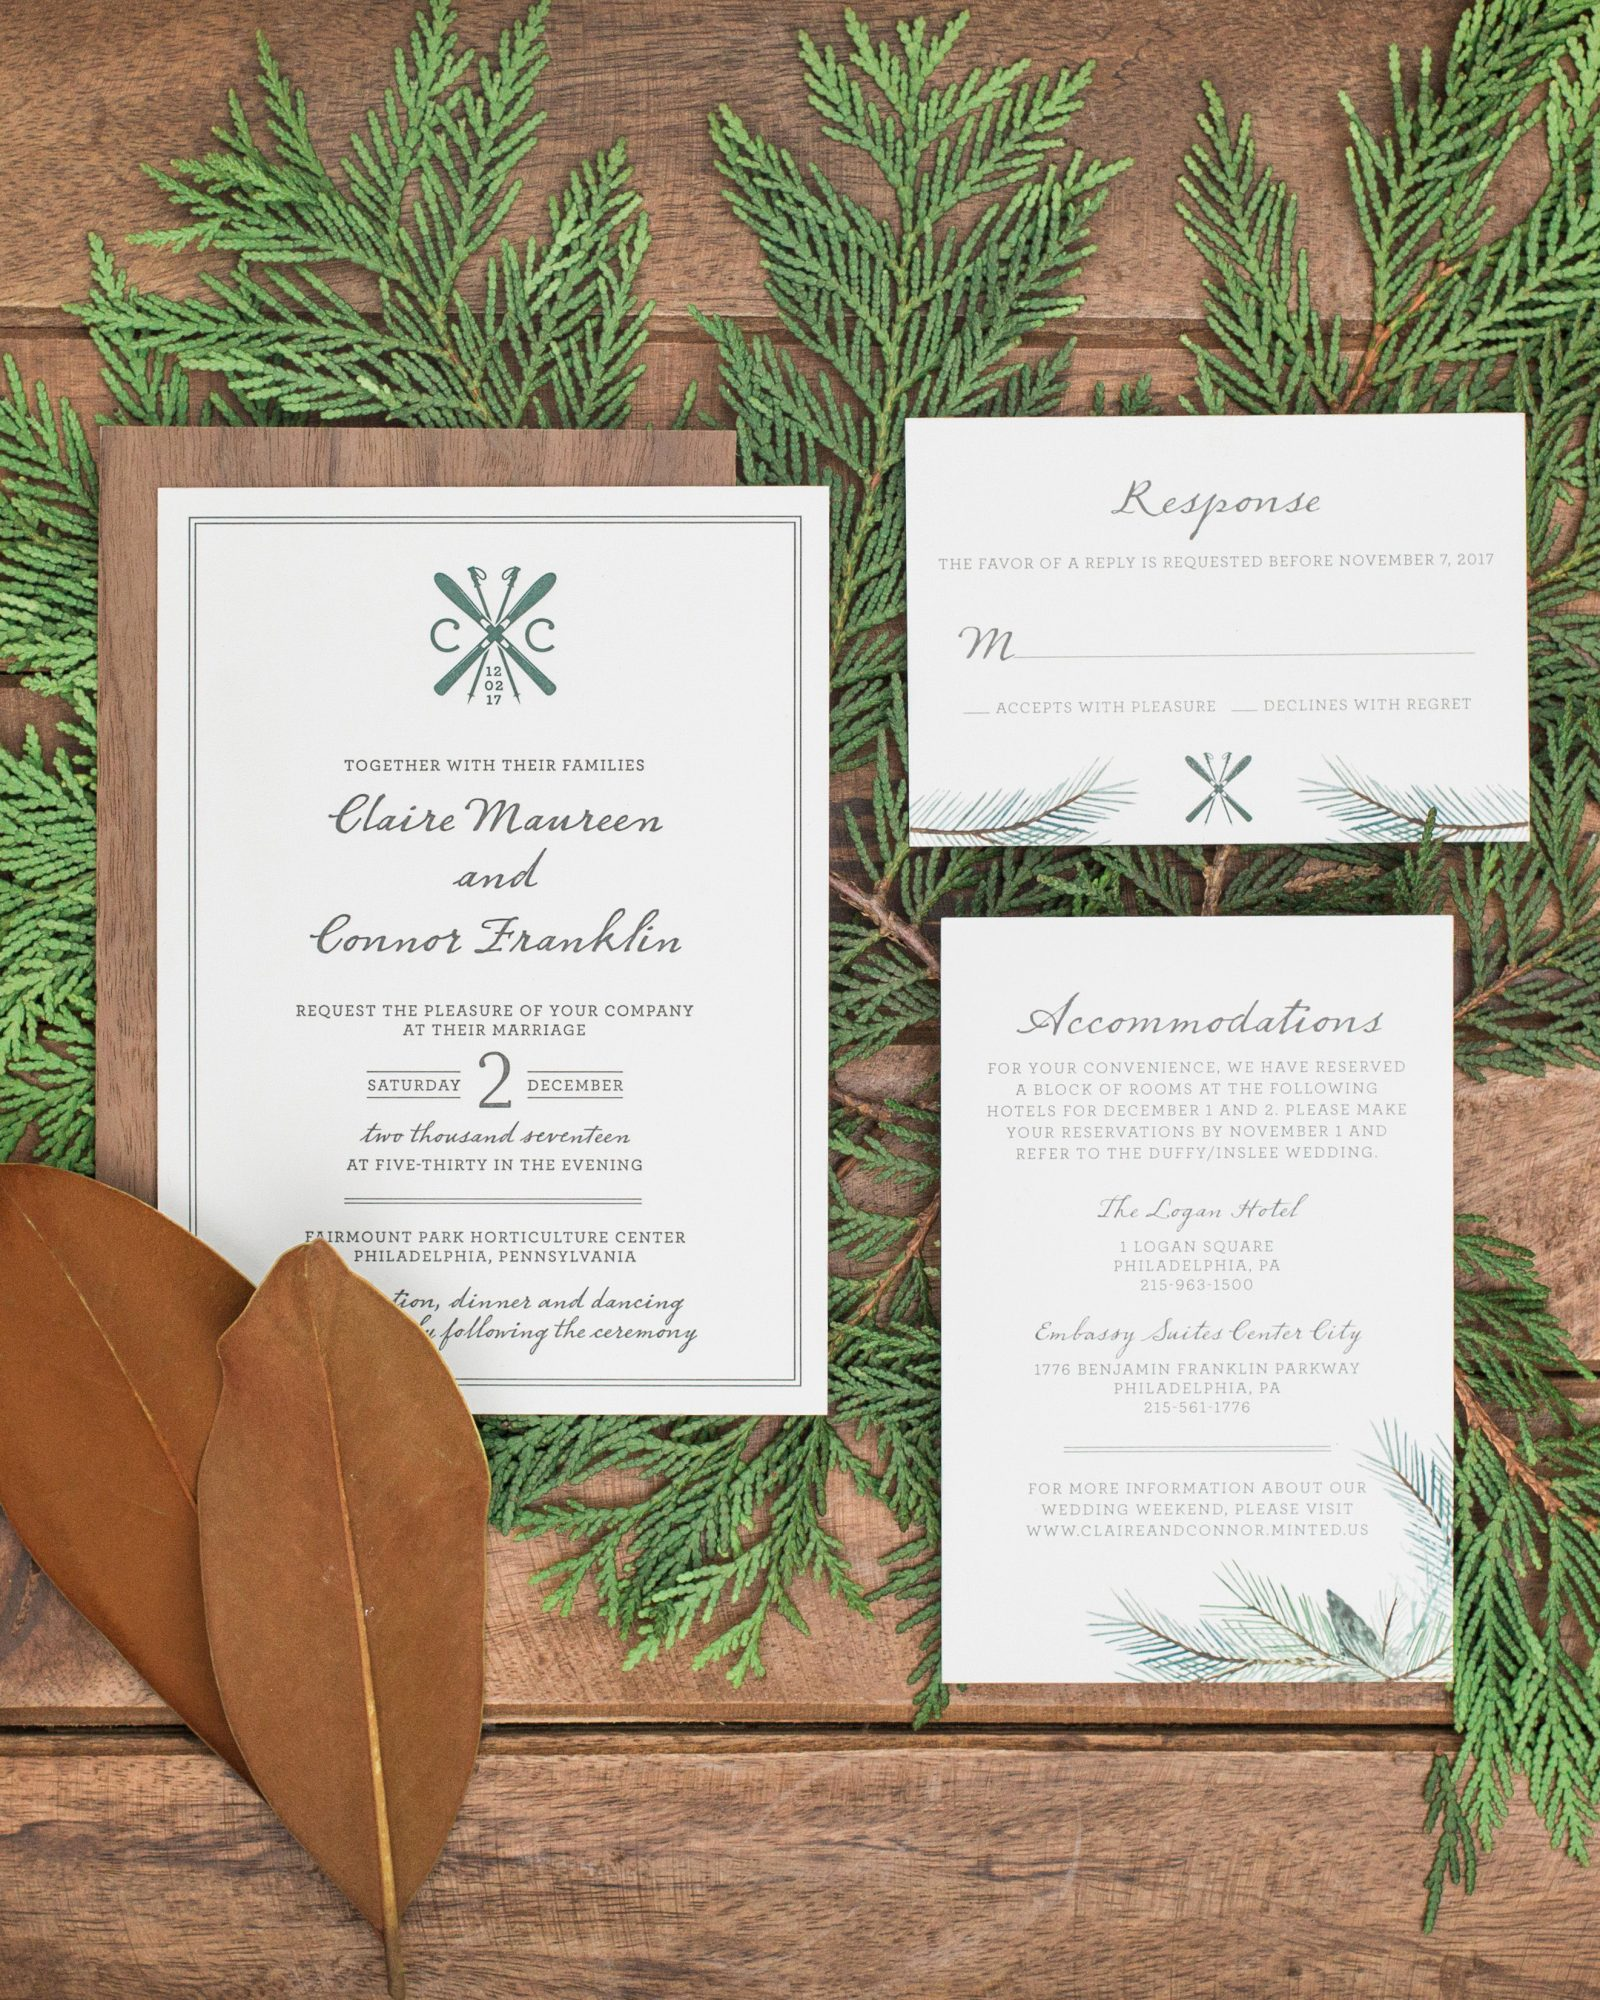 ski lodge theme invitation spread over pine leaves